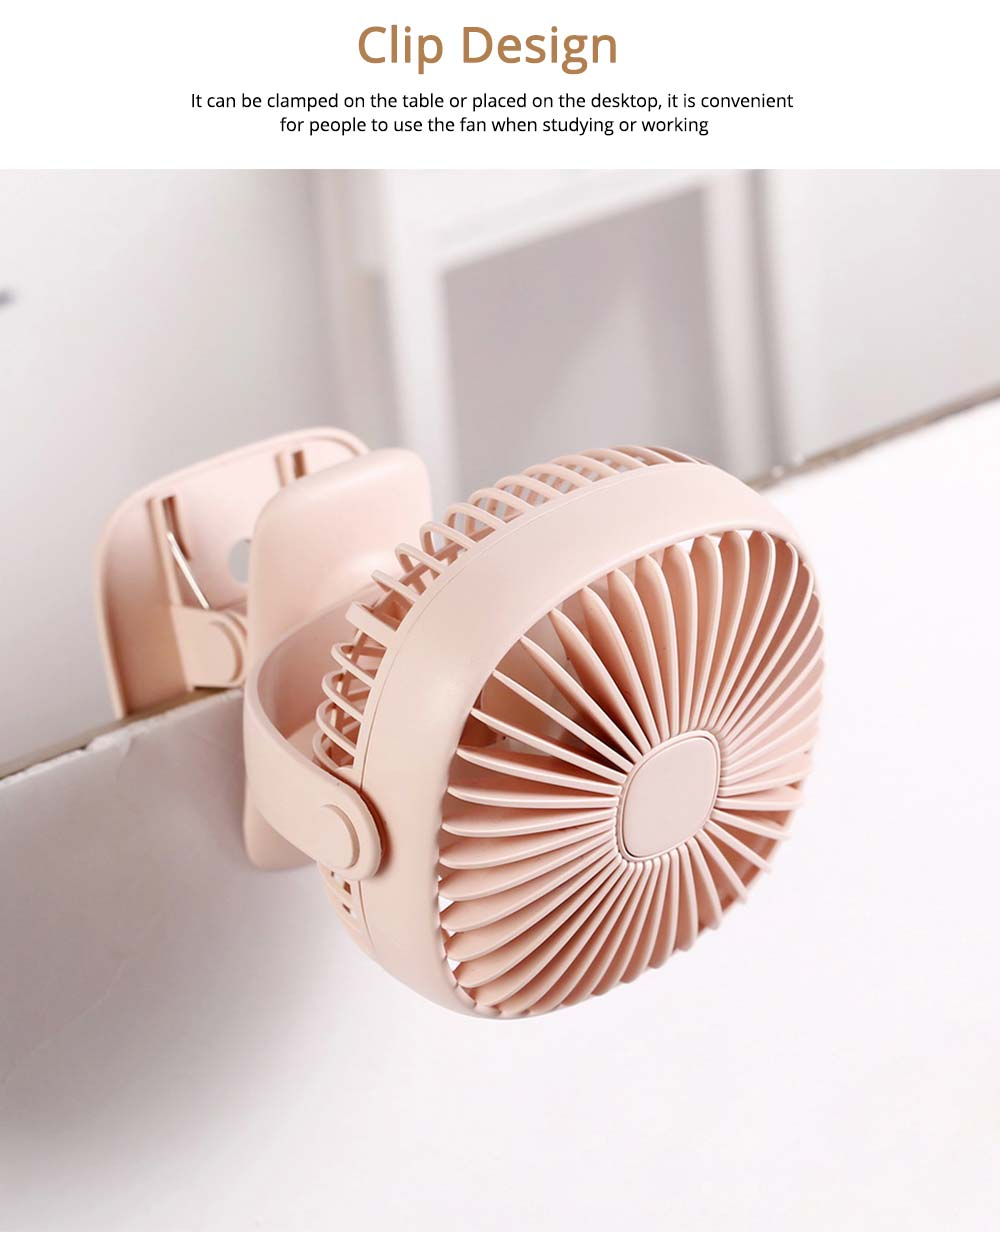 Rechargeable Portable Fan Table Clip Desk 360 Degree Rotation USB Electric Mini Fan with Lithium Cooling Battery 5